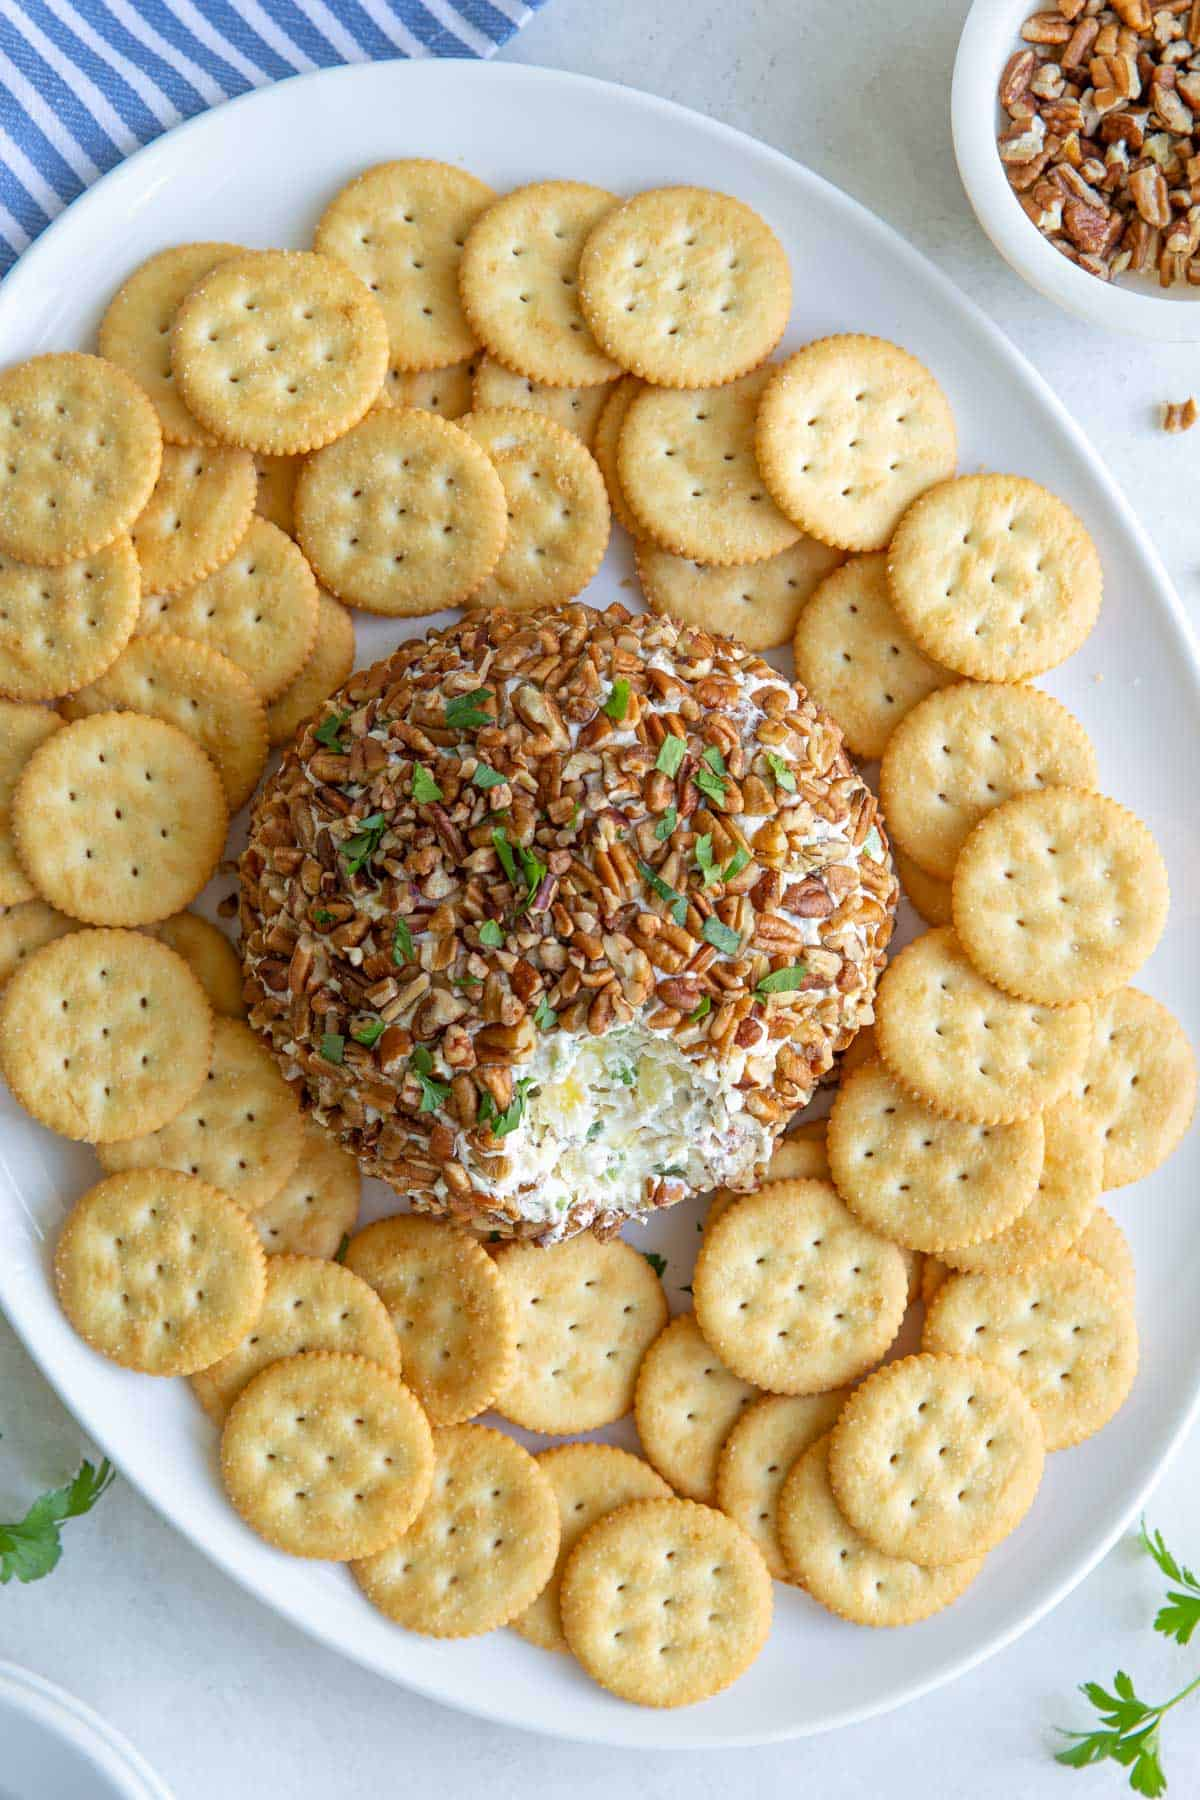 Overhead view of a pineapple cheese ball on an oval white platter with crackers.